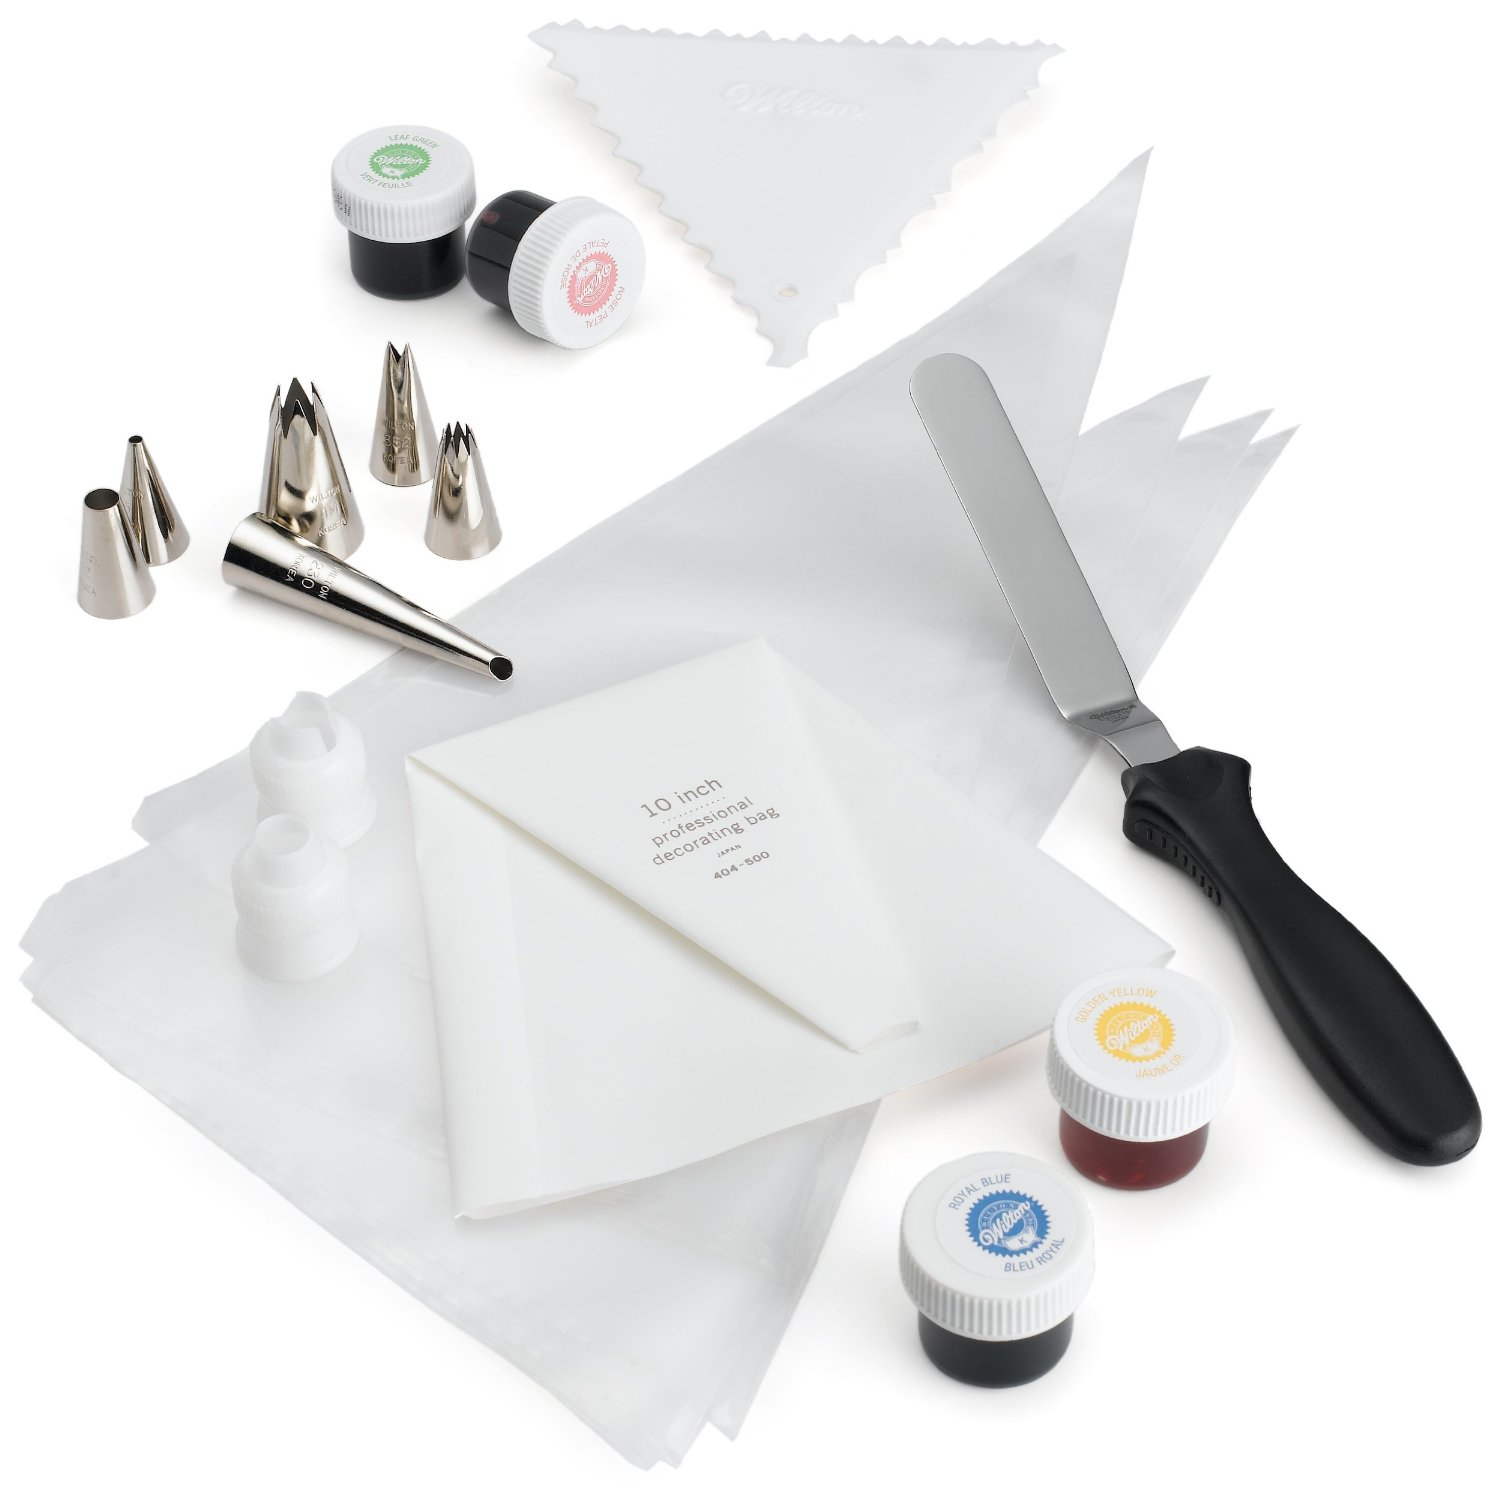 Wilton 23-Piece Cupcake & Cake Decorating Set Only USD13!!   Saving with Vetta   Couponing